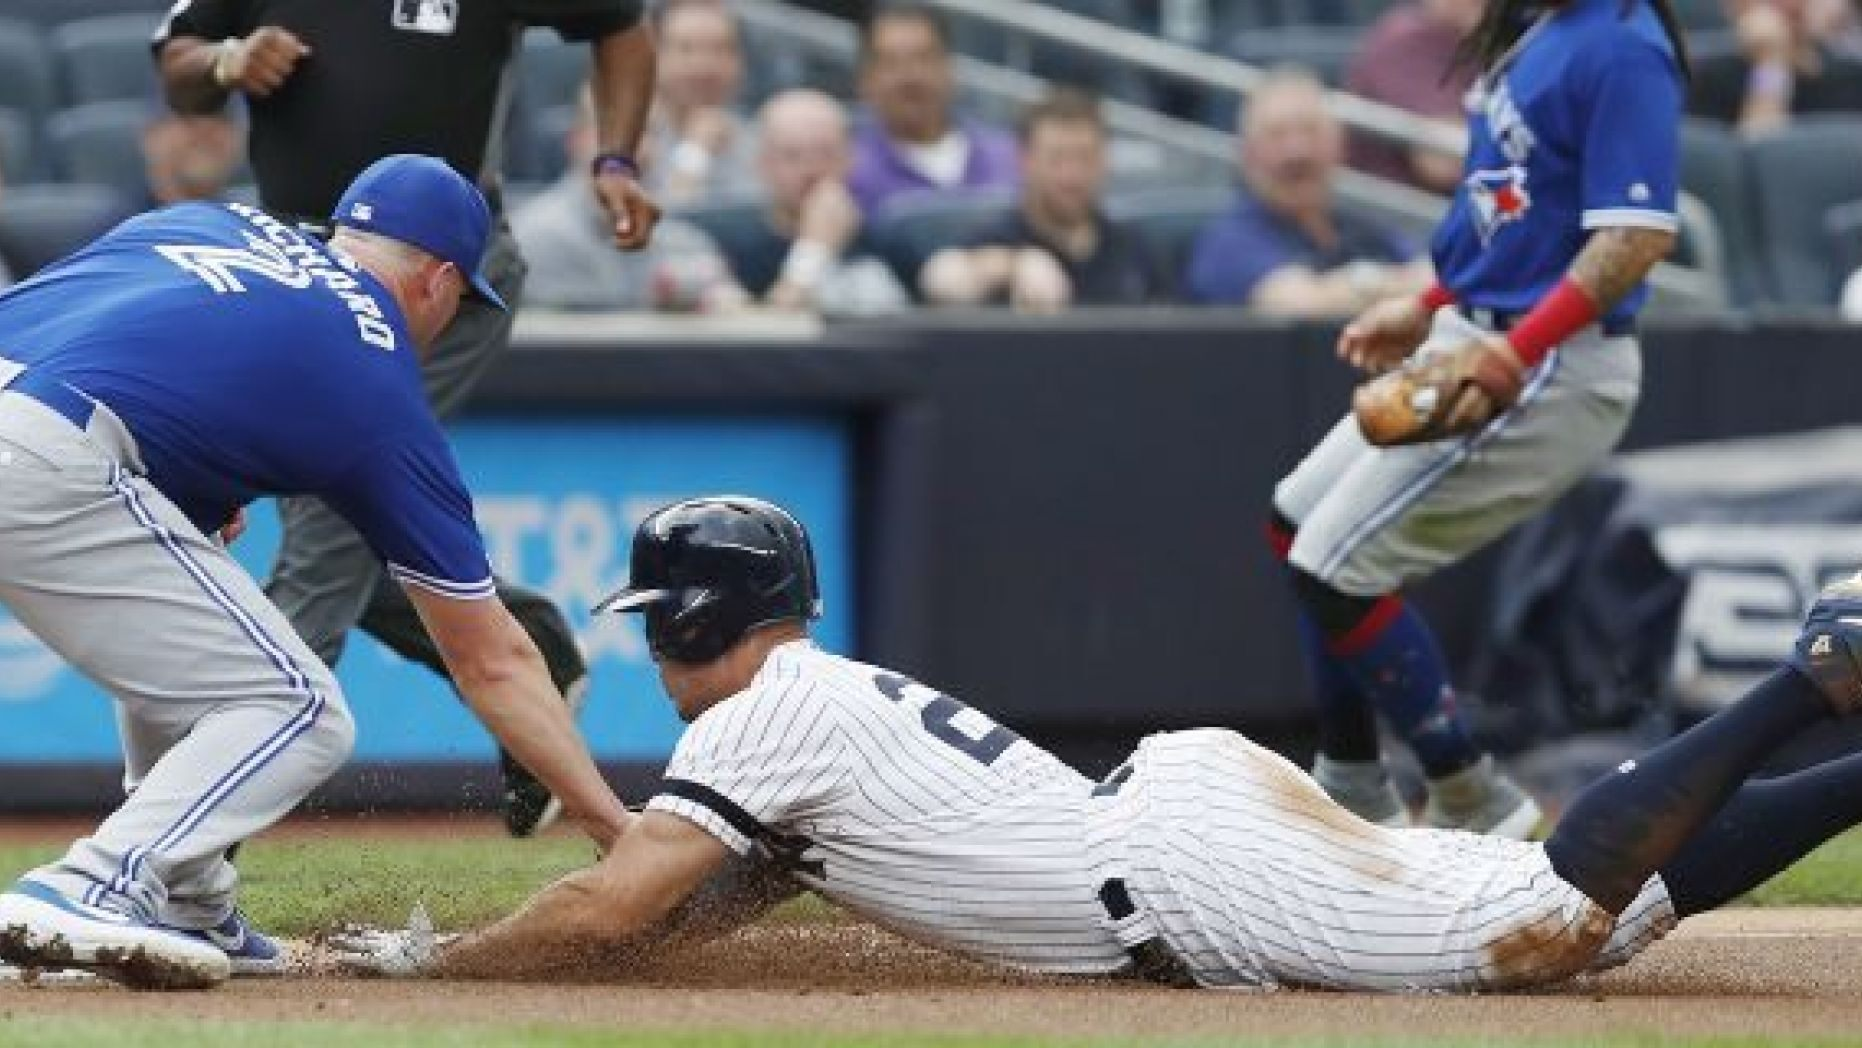 Toronto Blue Jays starting pitcher Clayton Richard, left, tags out New York Yankees